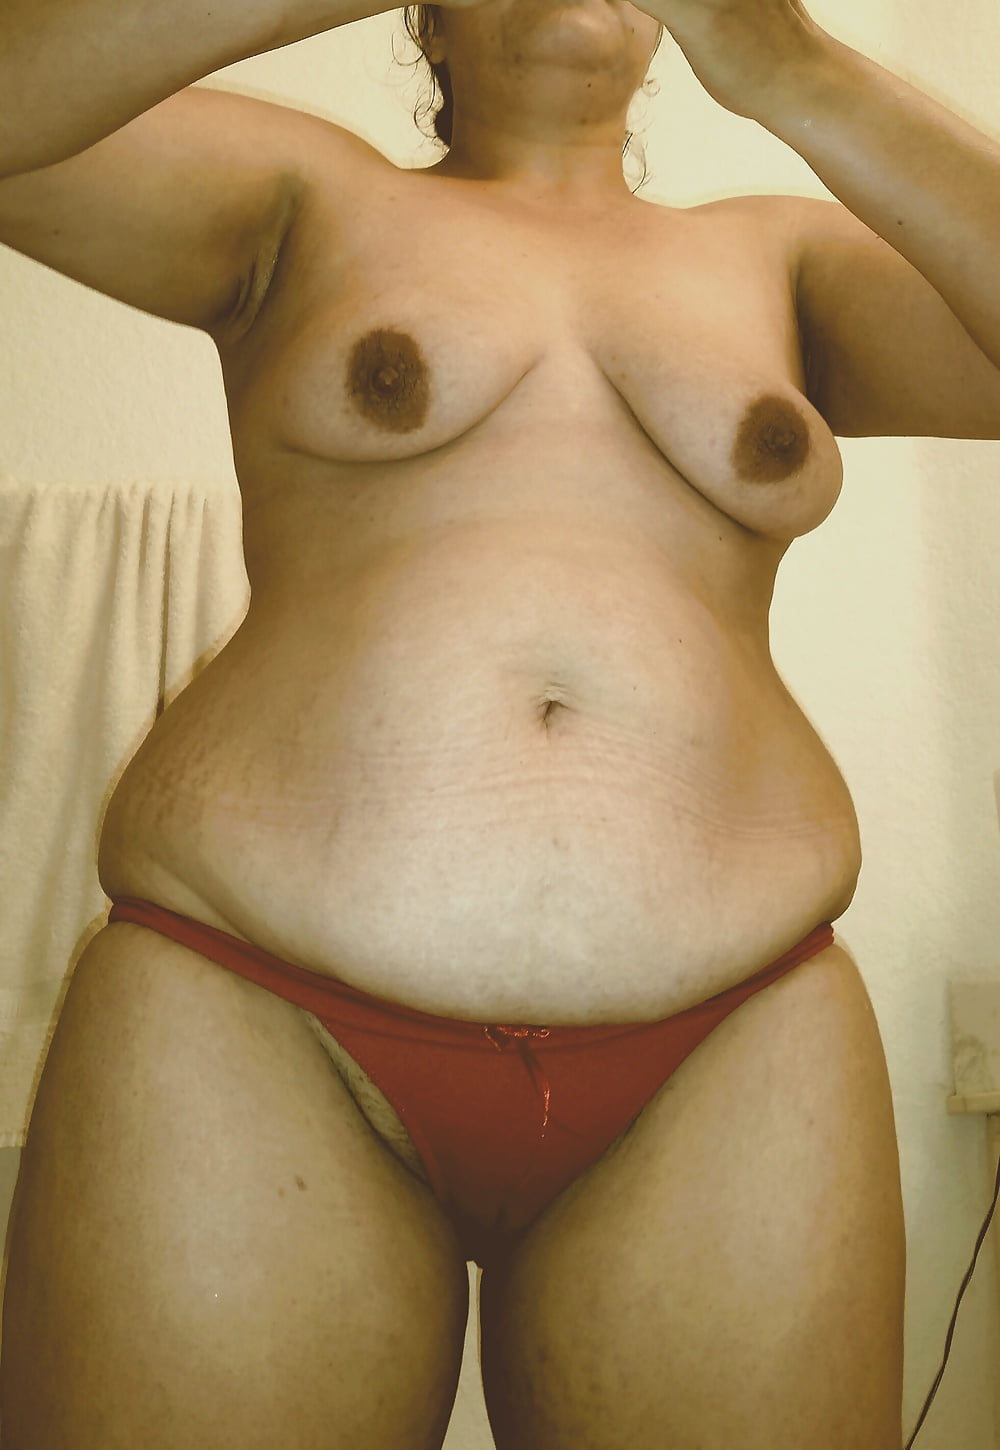 free adult personals in malaga